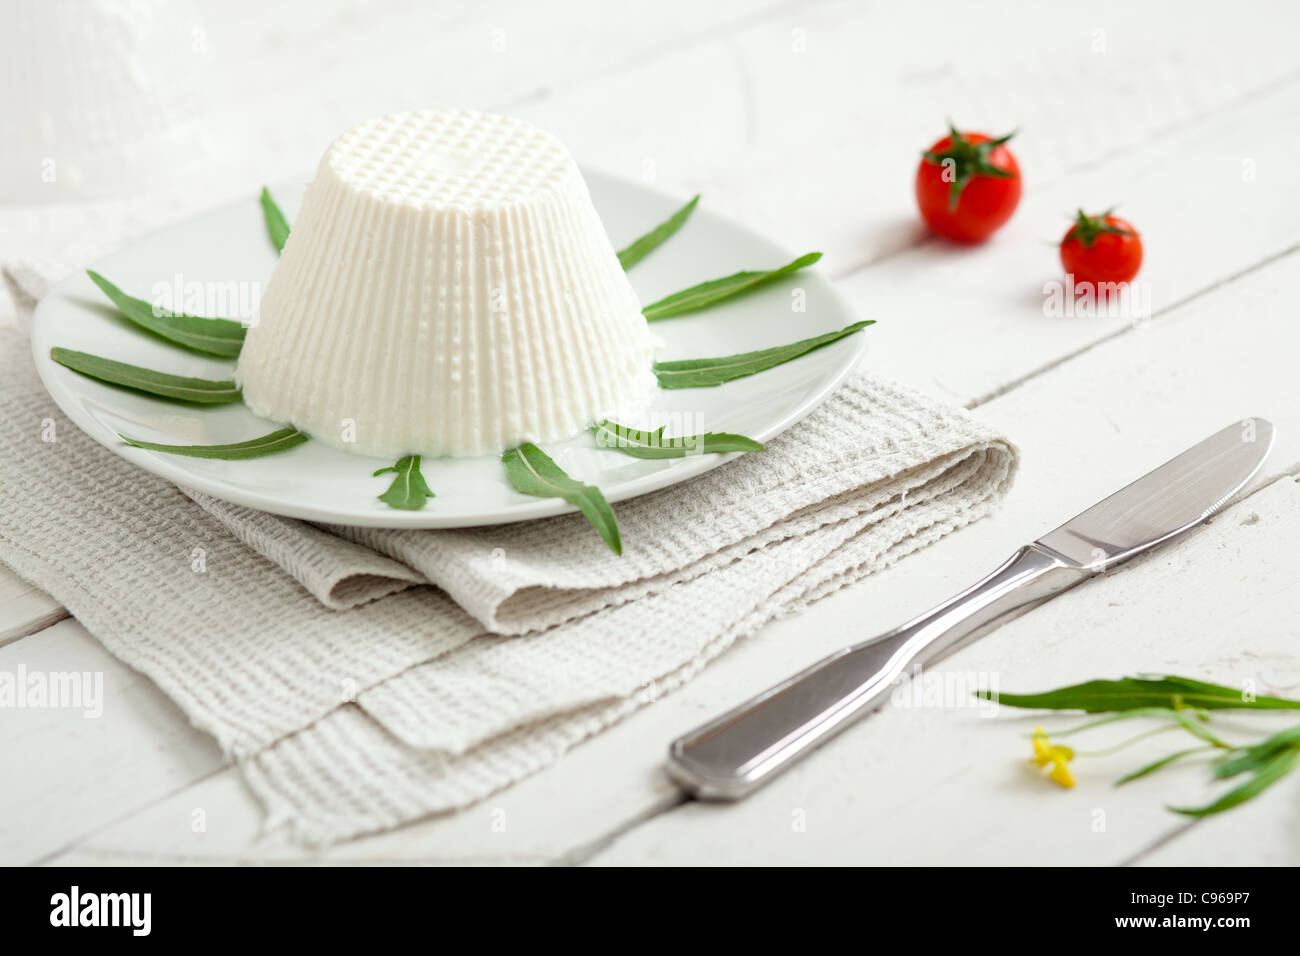 Ricotta, a Typical Italian Dairy Product, with Rocket, Cherry Tomatoes and a Knife - Stock Image